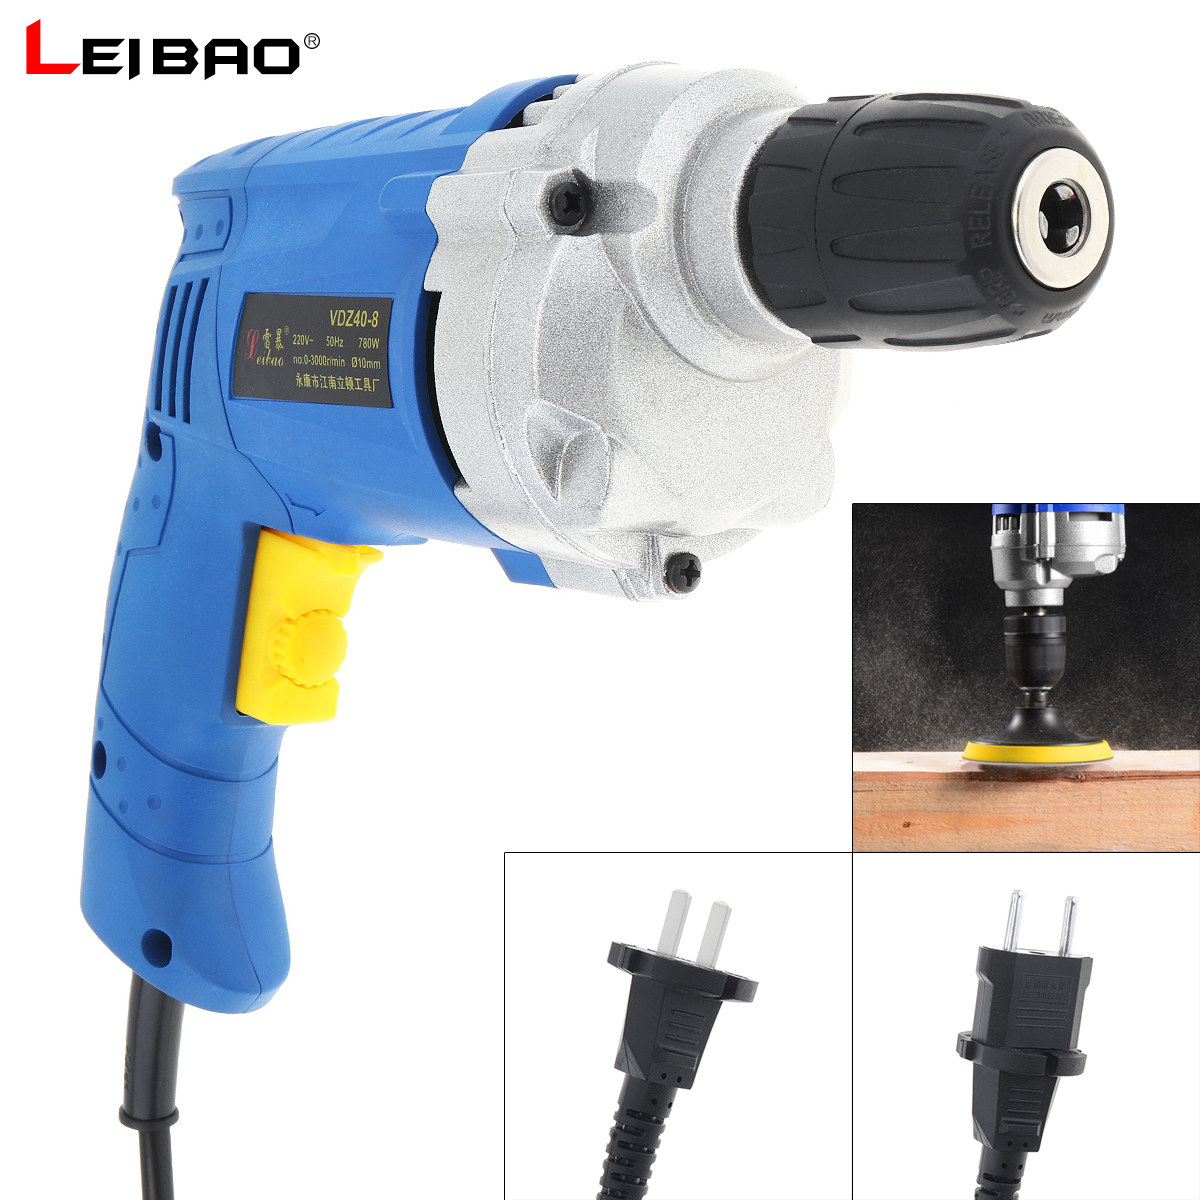 220V 780W High Power Handheld Impact Electric Drill With Rotation Adjustment Switch And 10mm Drill Chuck For Handling Screws